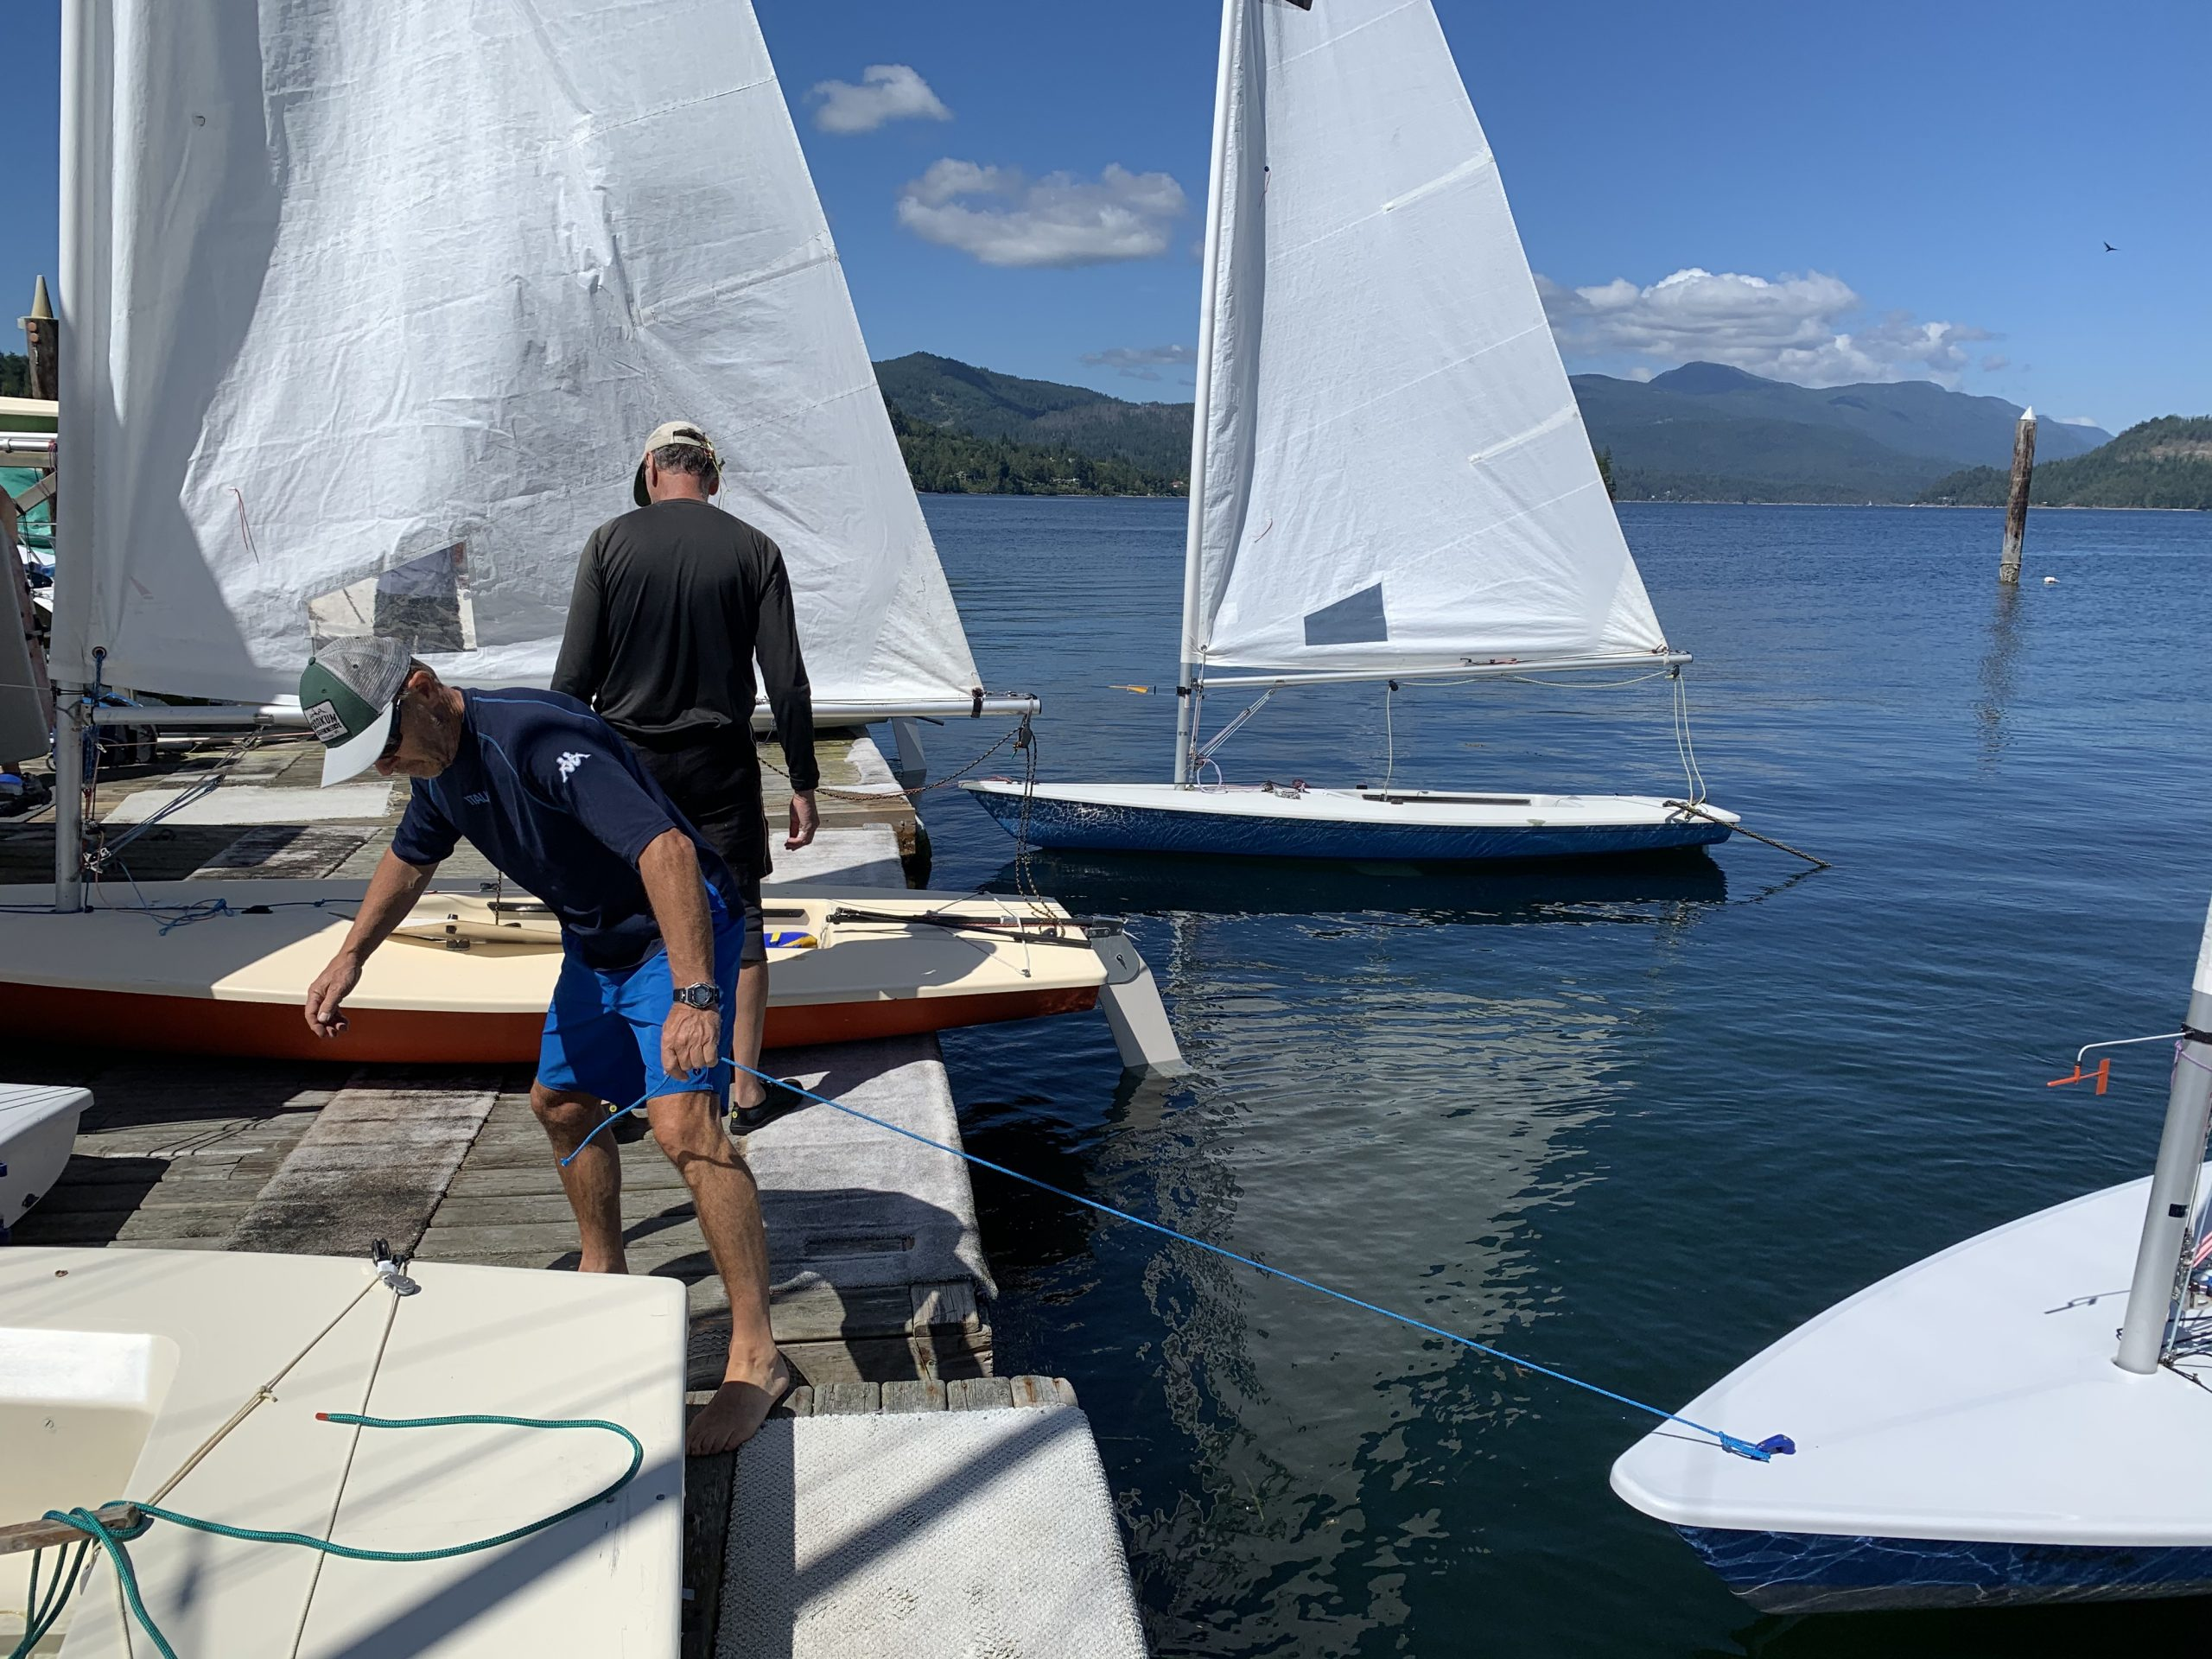 Gregor and Kim get there boats rigged up.